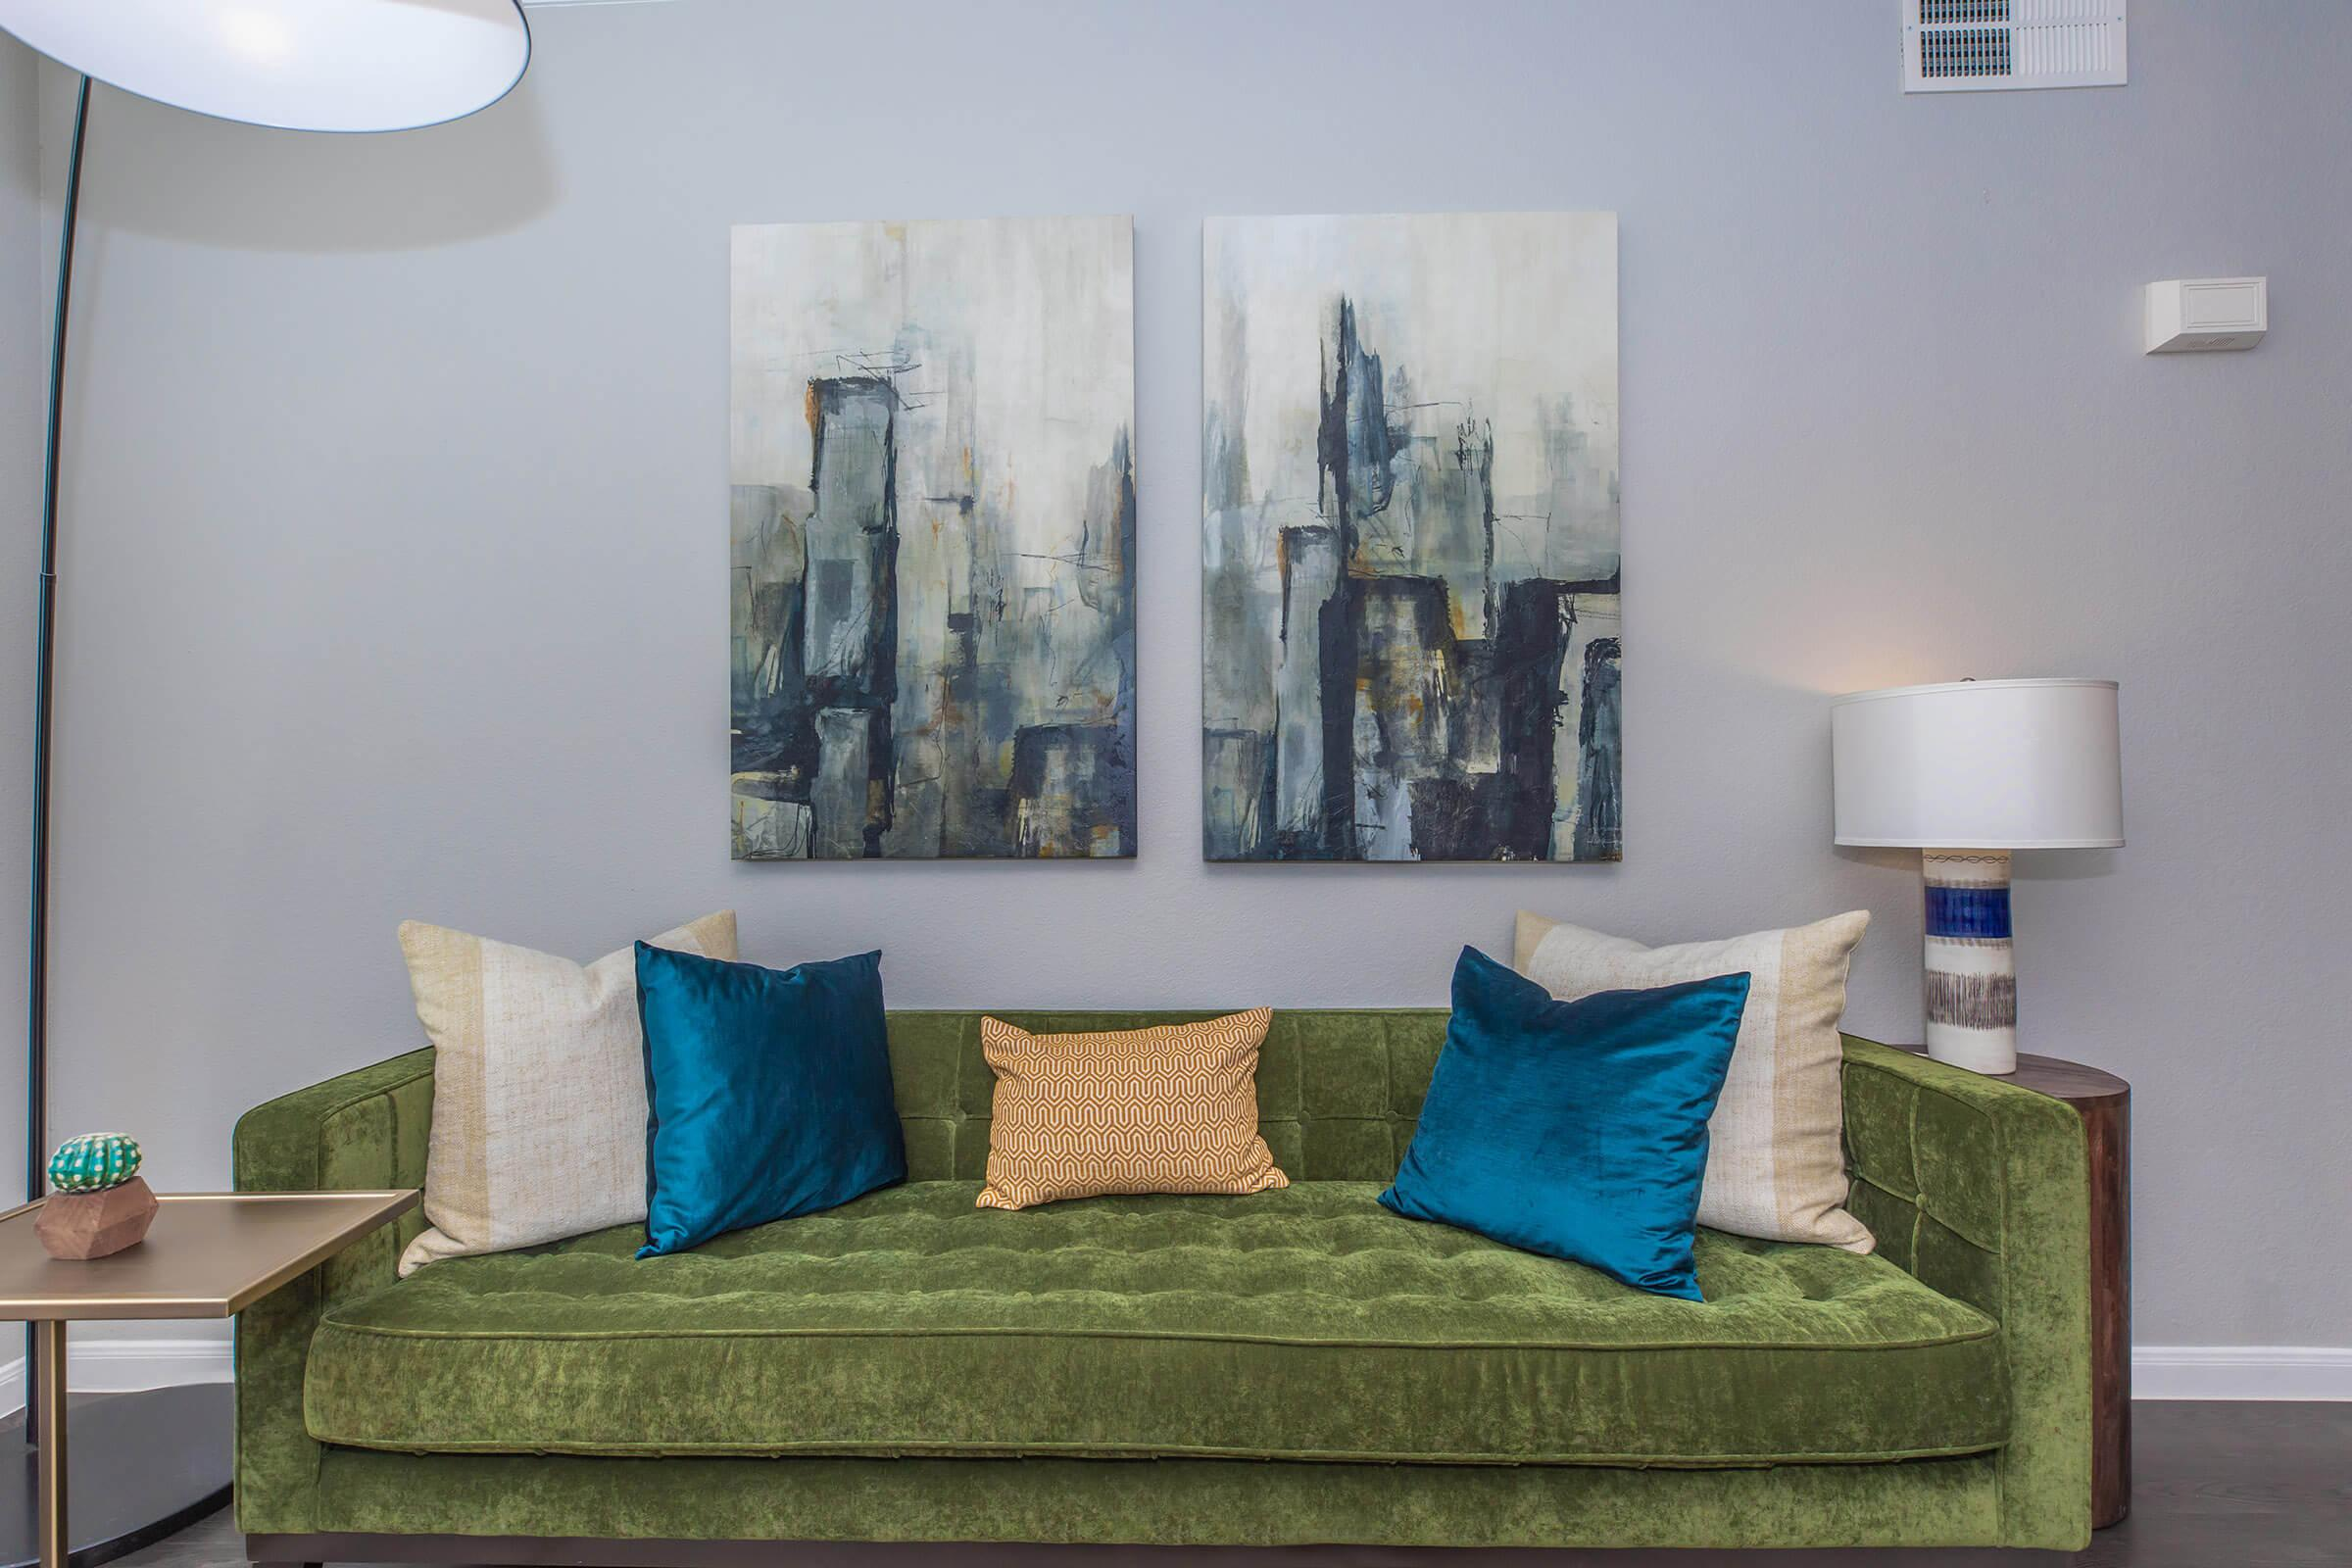 a living room with a blue blanket